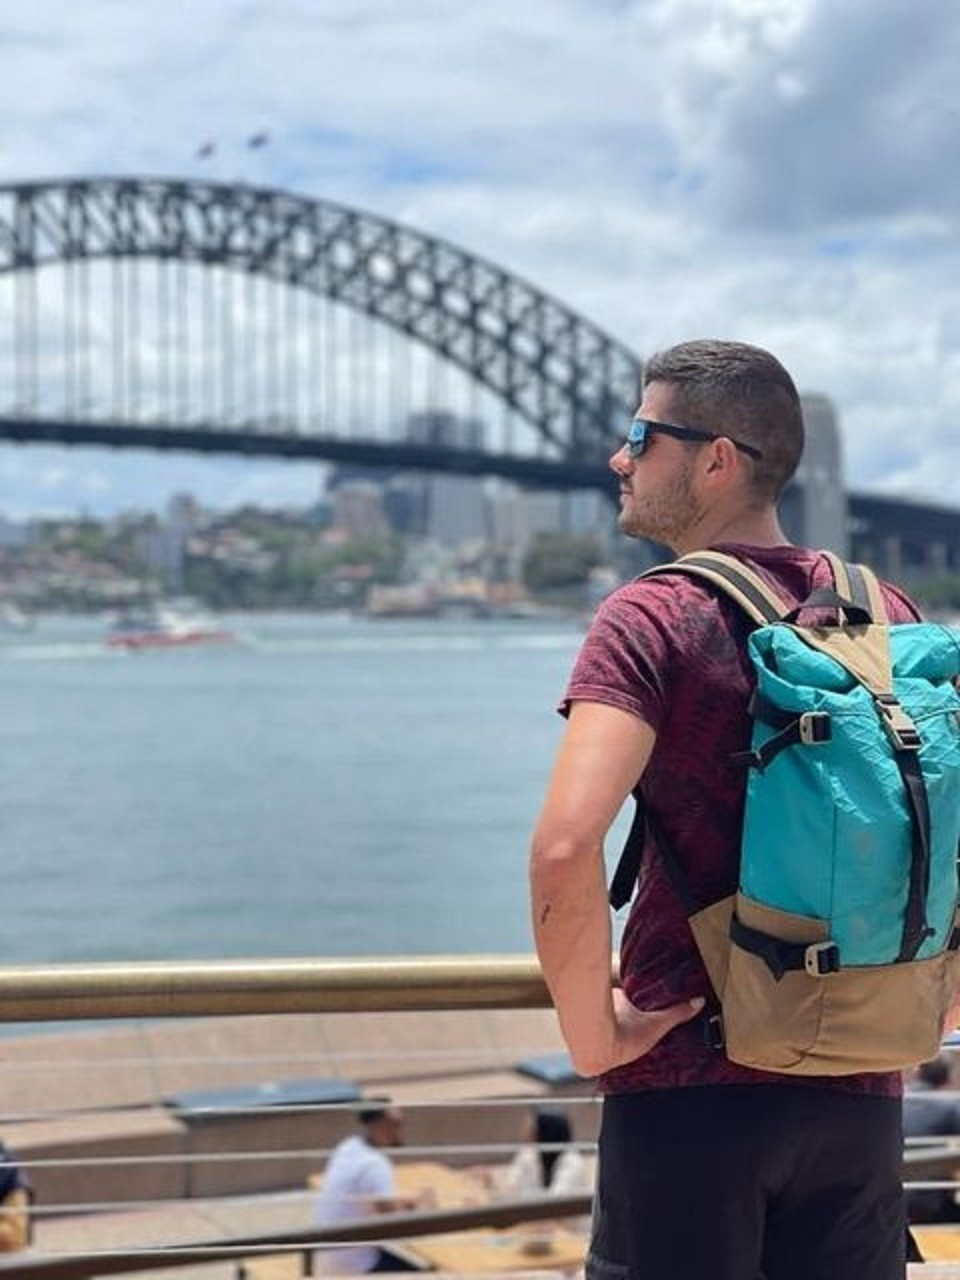 Emmanuel Caro, with his backpack, wants to explore different parts of Australia.